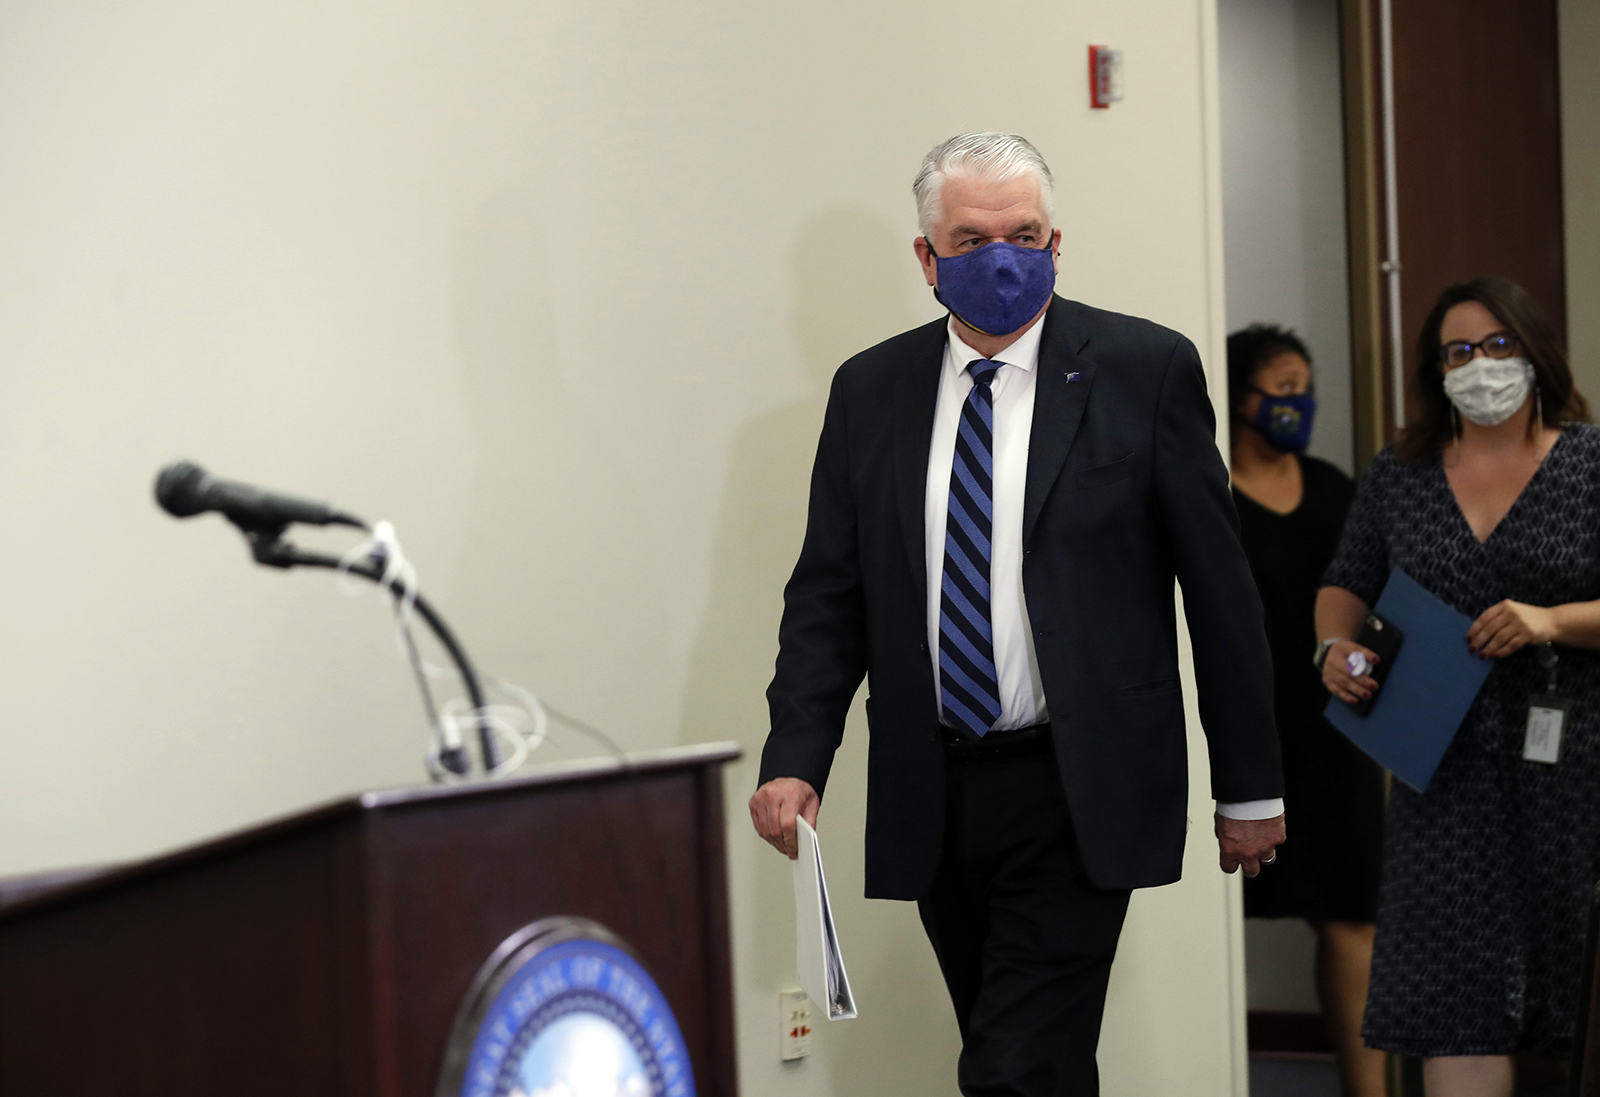 Nevada Governor Steve Sisolak arrives for a news conference at the Grant Sawyer State Building in Las Vegas, on Tuesday, September 29.